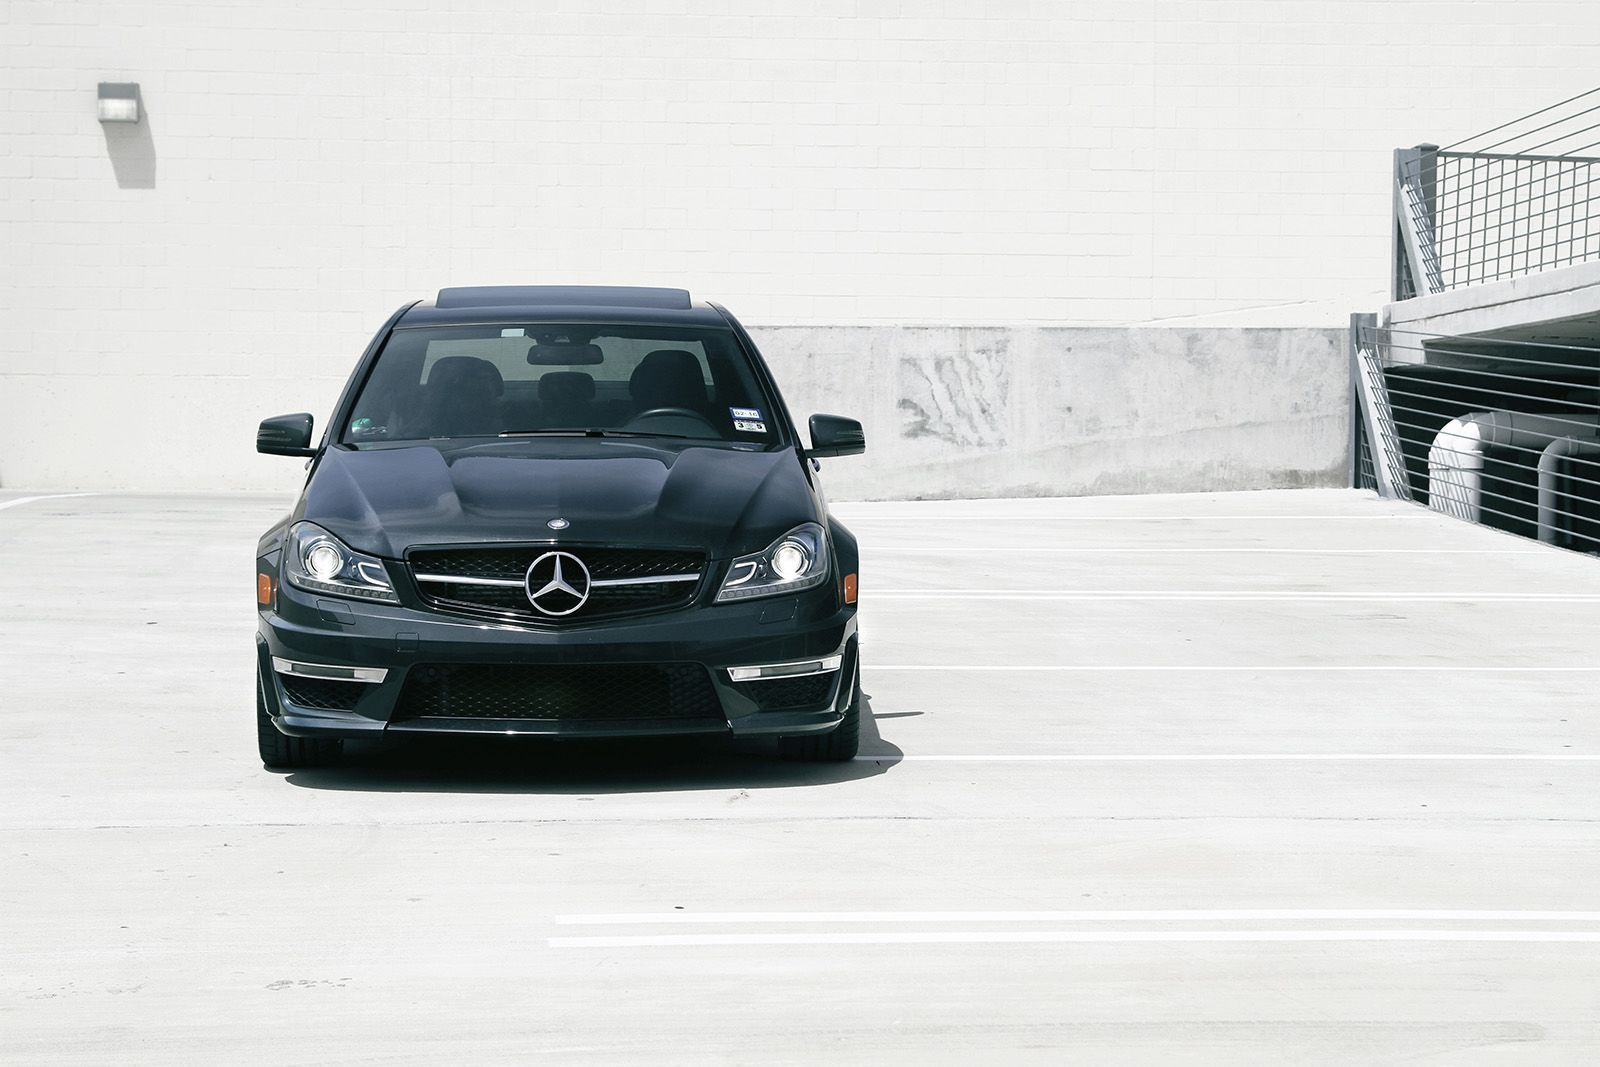 Black bison edition tuning package for the w204 mercedes benz c class - Mercedes Benz W204 C63 Amg